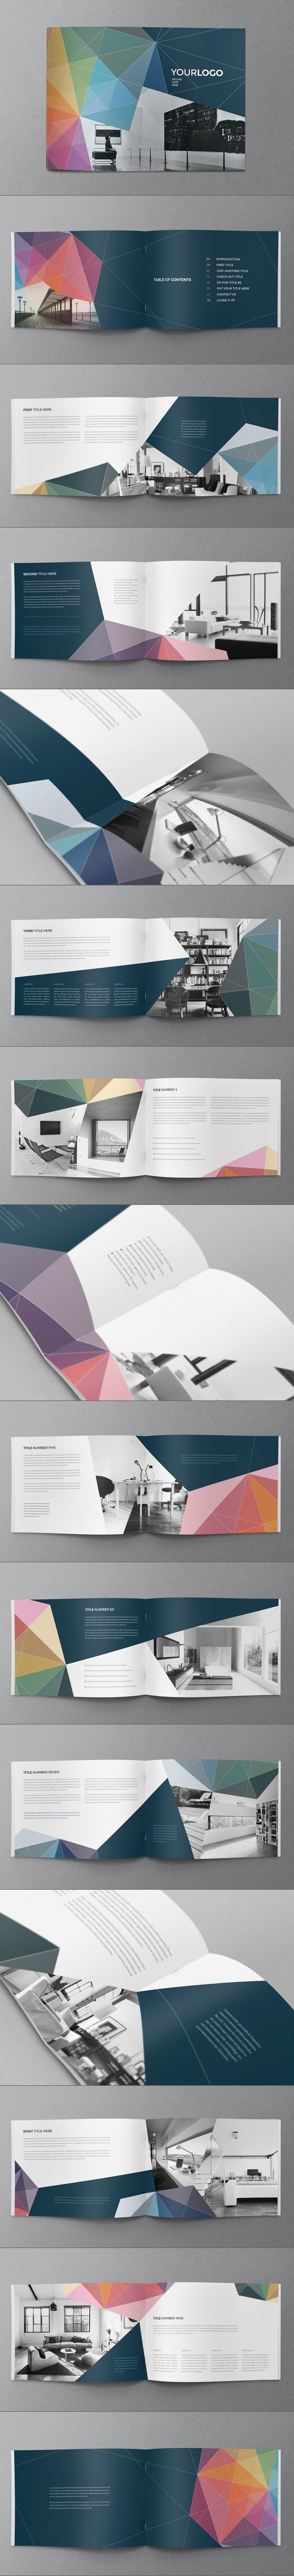 Multicolor Modern Brochure by Abra Design, via Behance